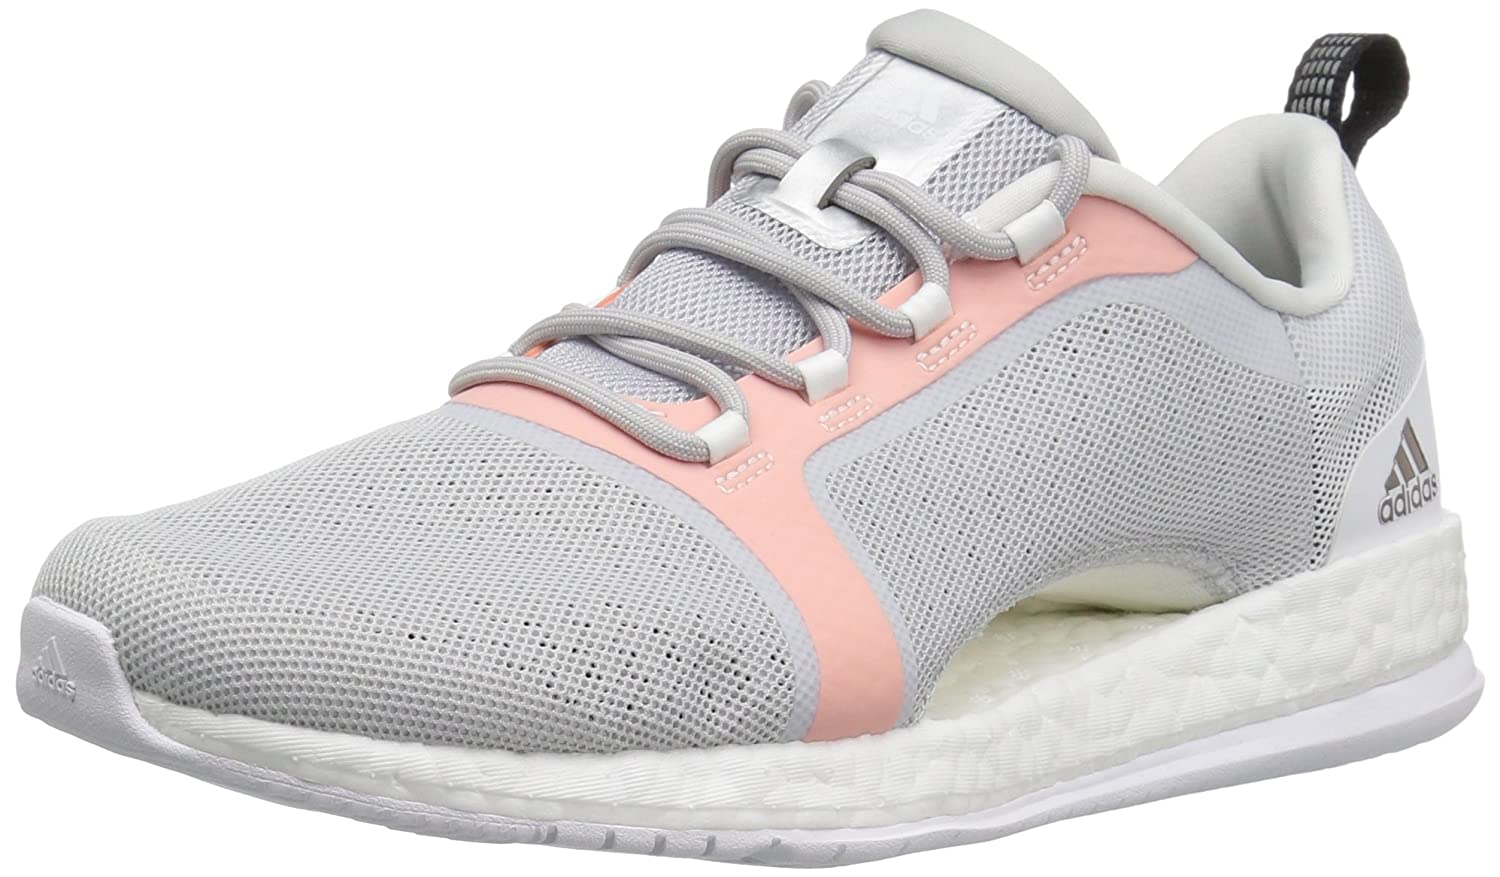 adidas Women's Pure Boost X Tr 2 Cross-Trainer Shoes B01LZXVSVM 10 M US|Light Grey/Black/Easy Orange